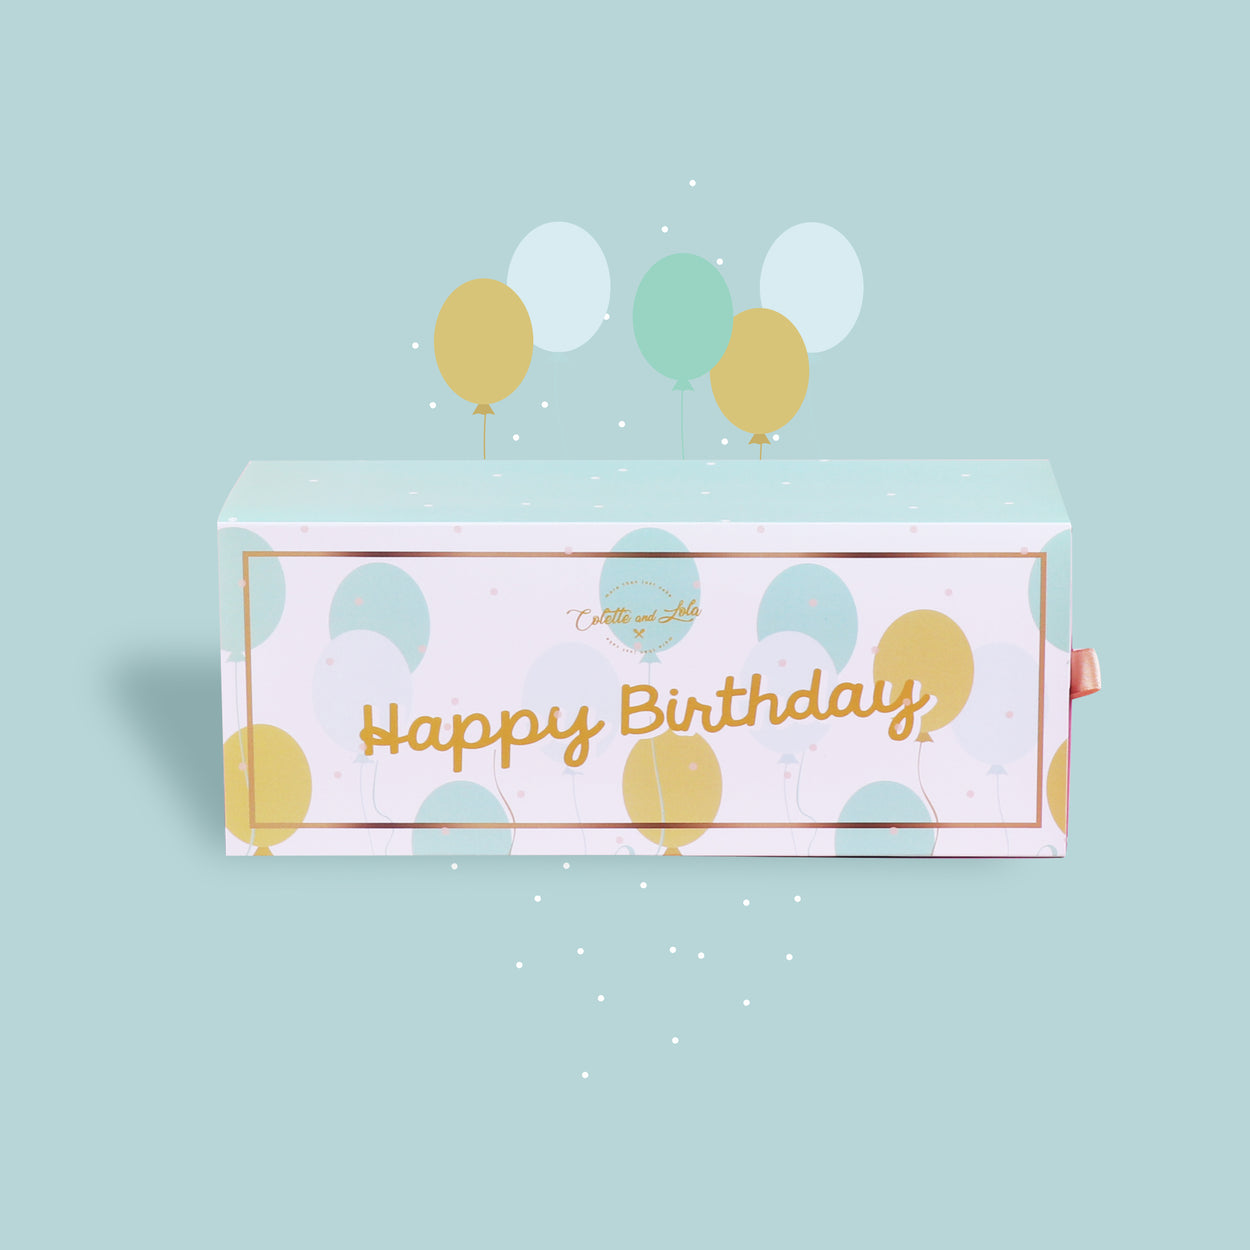 Happy Birthday - Gift Box Sleeve